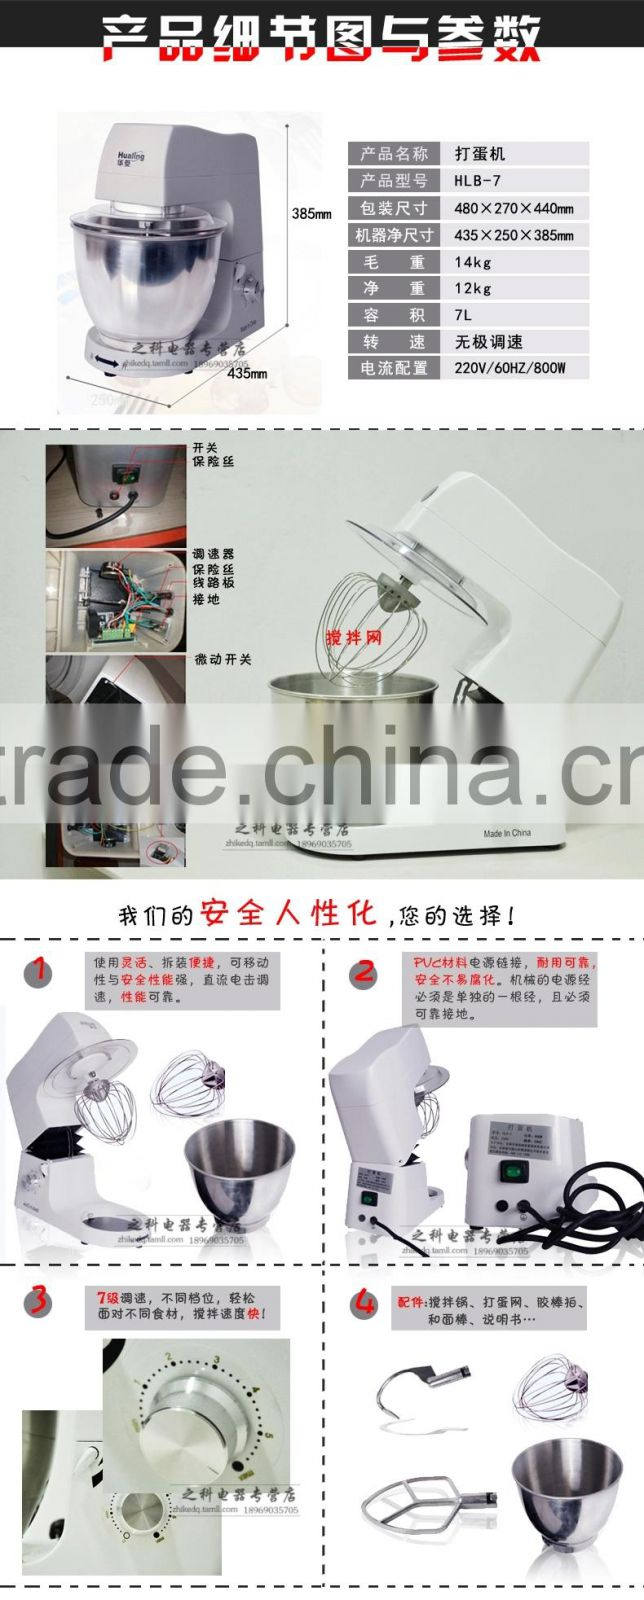 Hlb 7 Multifunctional Electric Stand Food Egg Dough Mixer Beater Wiring Diagram Machine